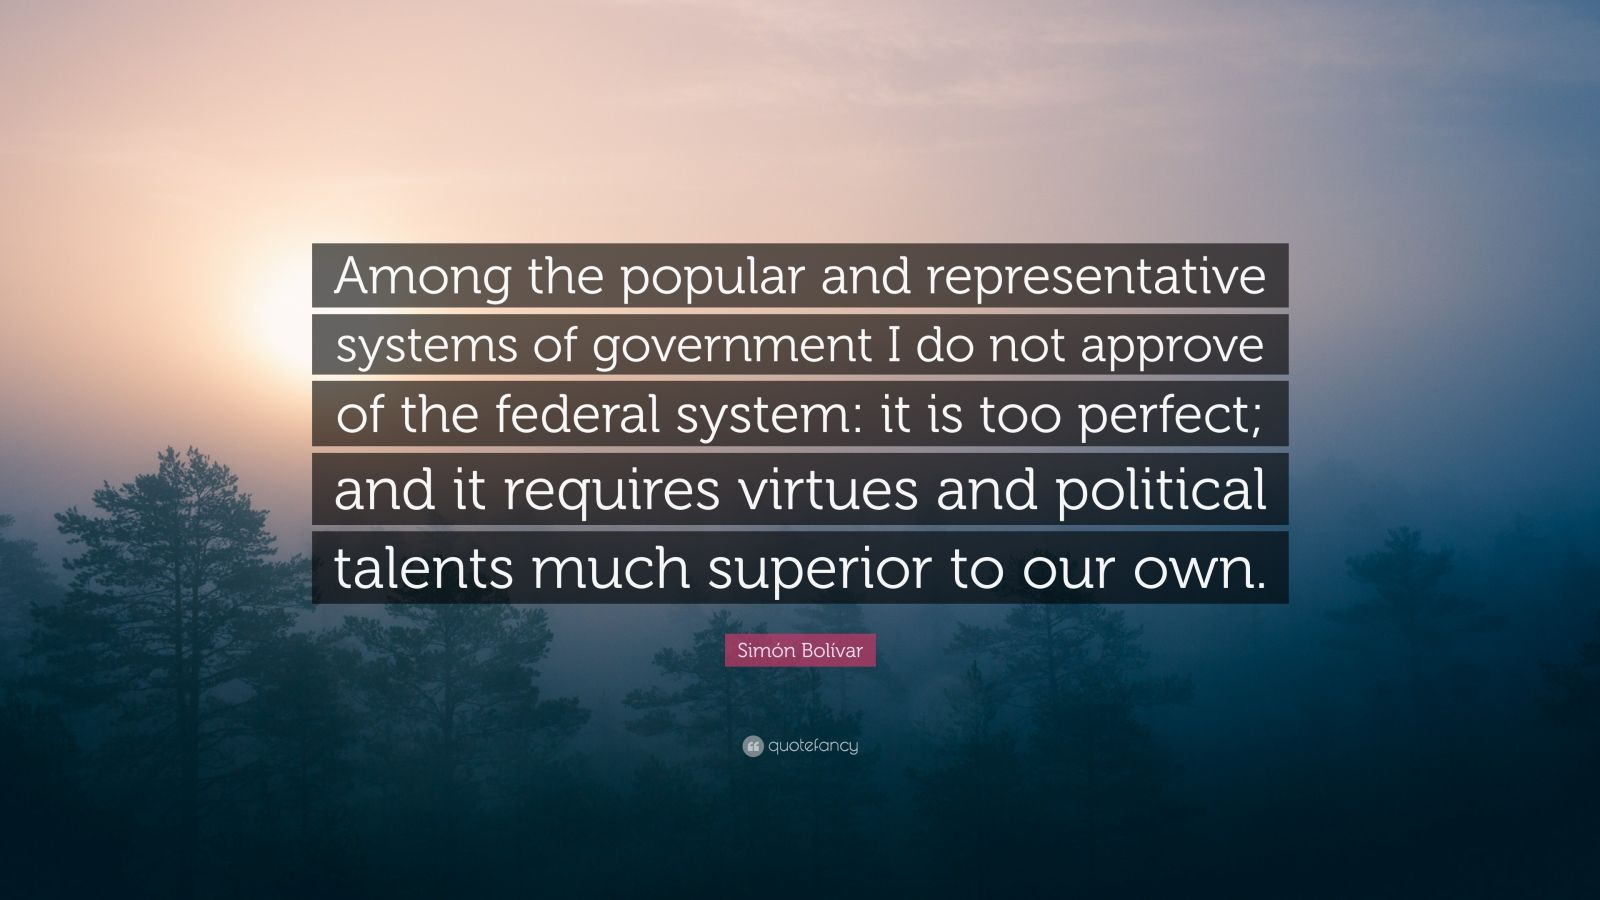 """Simón Bolívar Quote: """"Among the popular and representative systems of government I do not approve of the federal system: it is too perfect; and it requires virtues and political talents much superior to our own."""""""